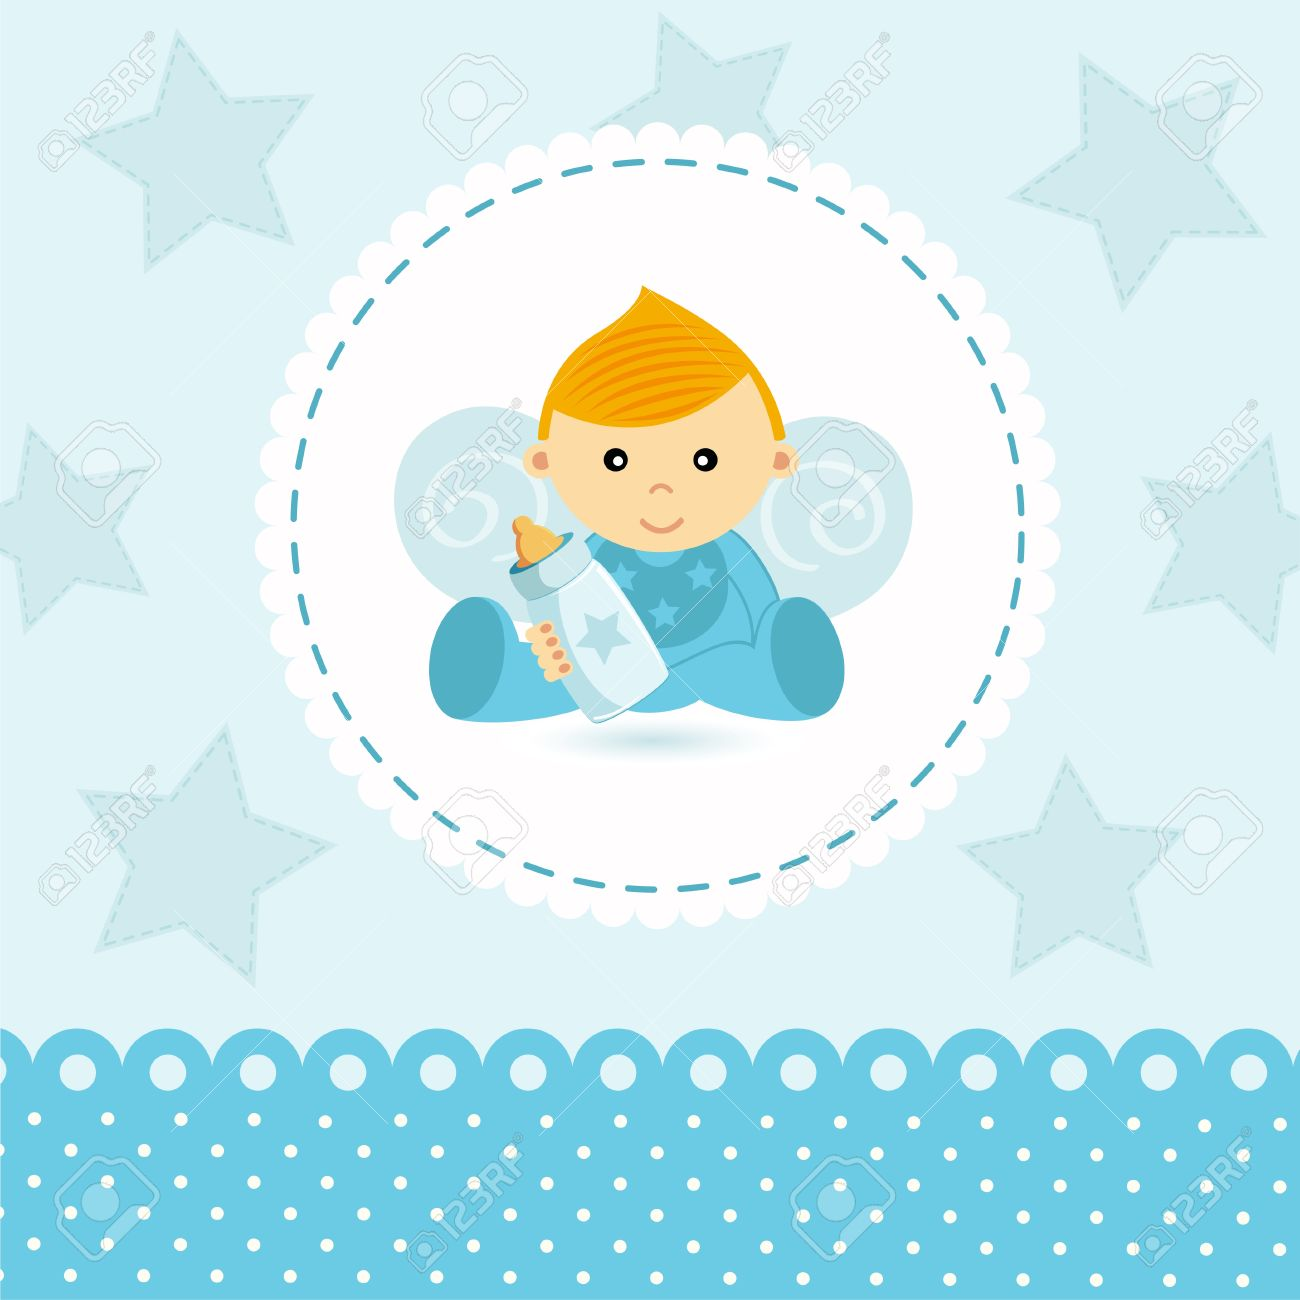 Baby boy angel clipart 5 » Clipart Station.